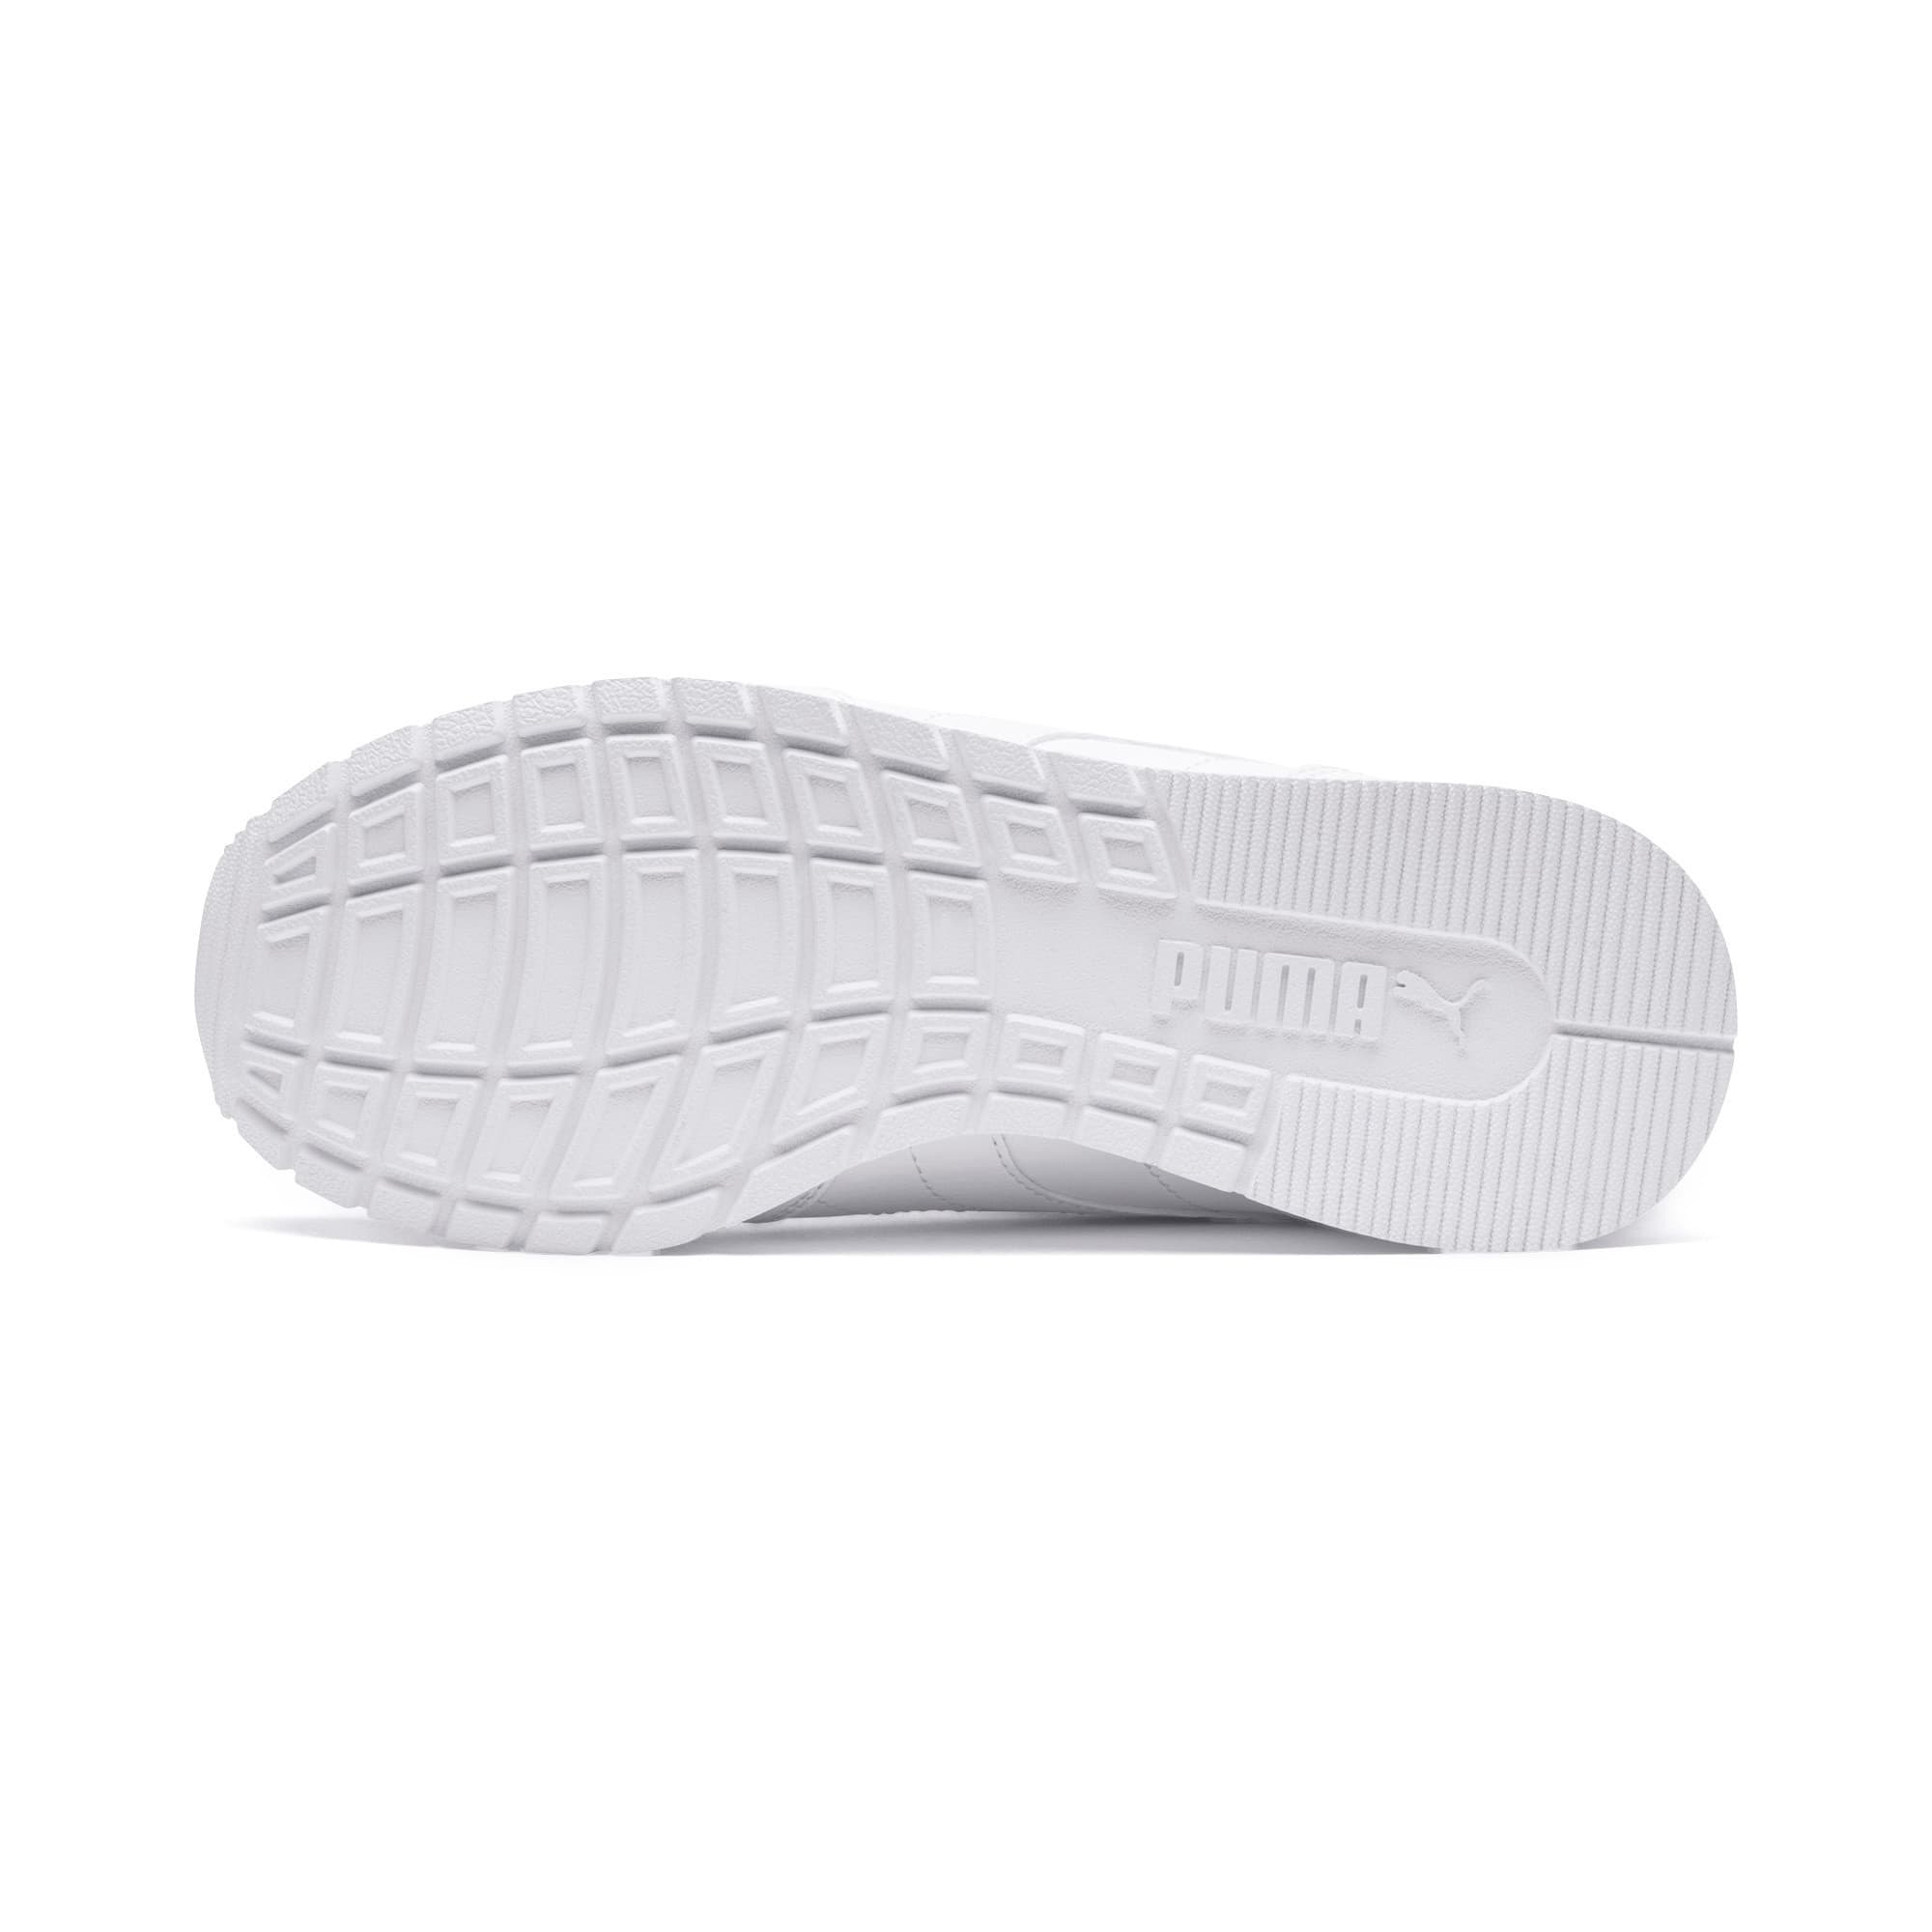 Thumbnail 4 of ST Runner v2 L Youth Trainers, Puma White-Gray Violet, medium-IND